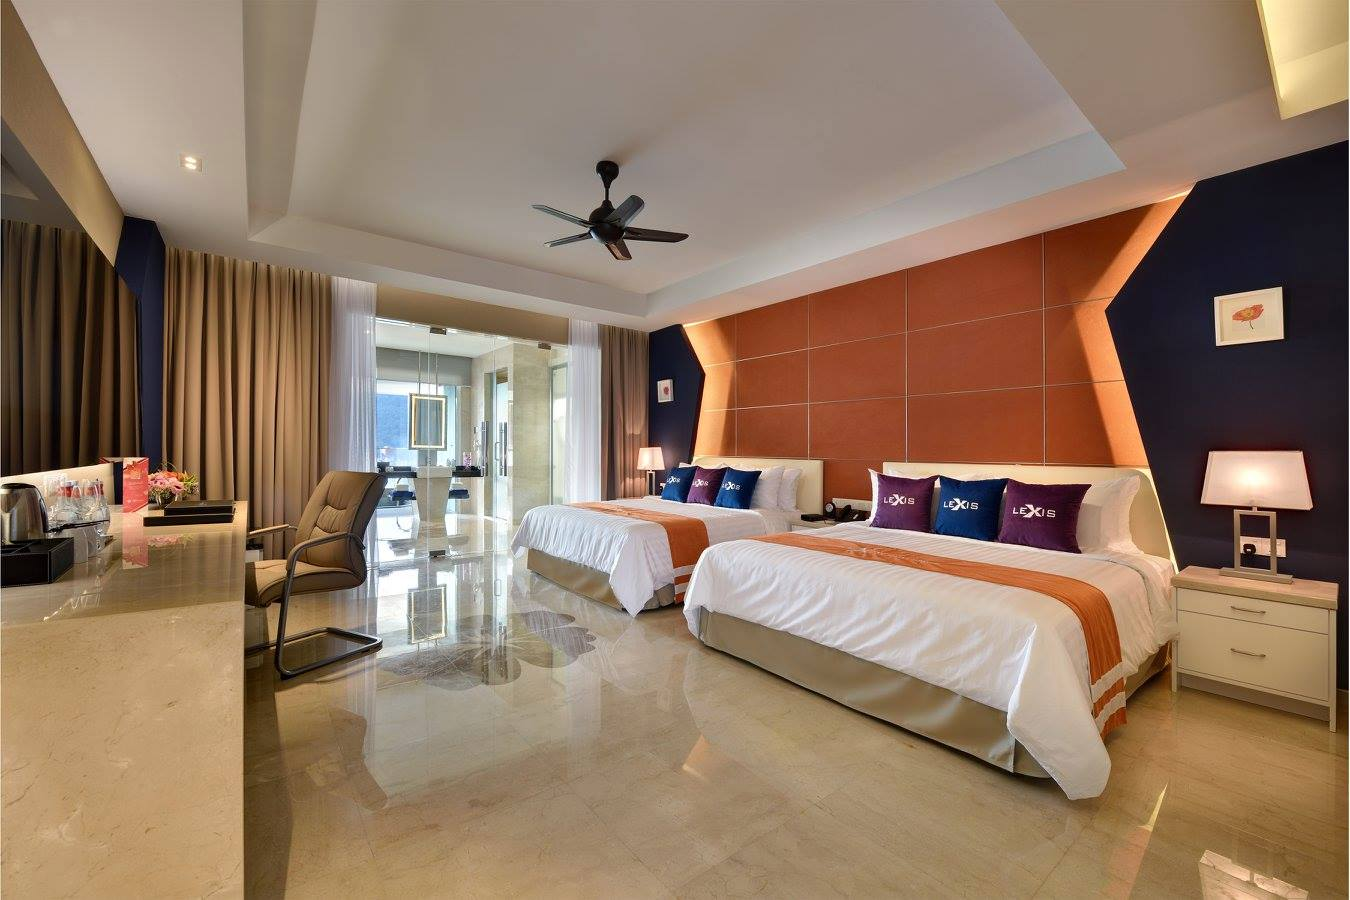 Image from Lexis Suites Penang/Facebook